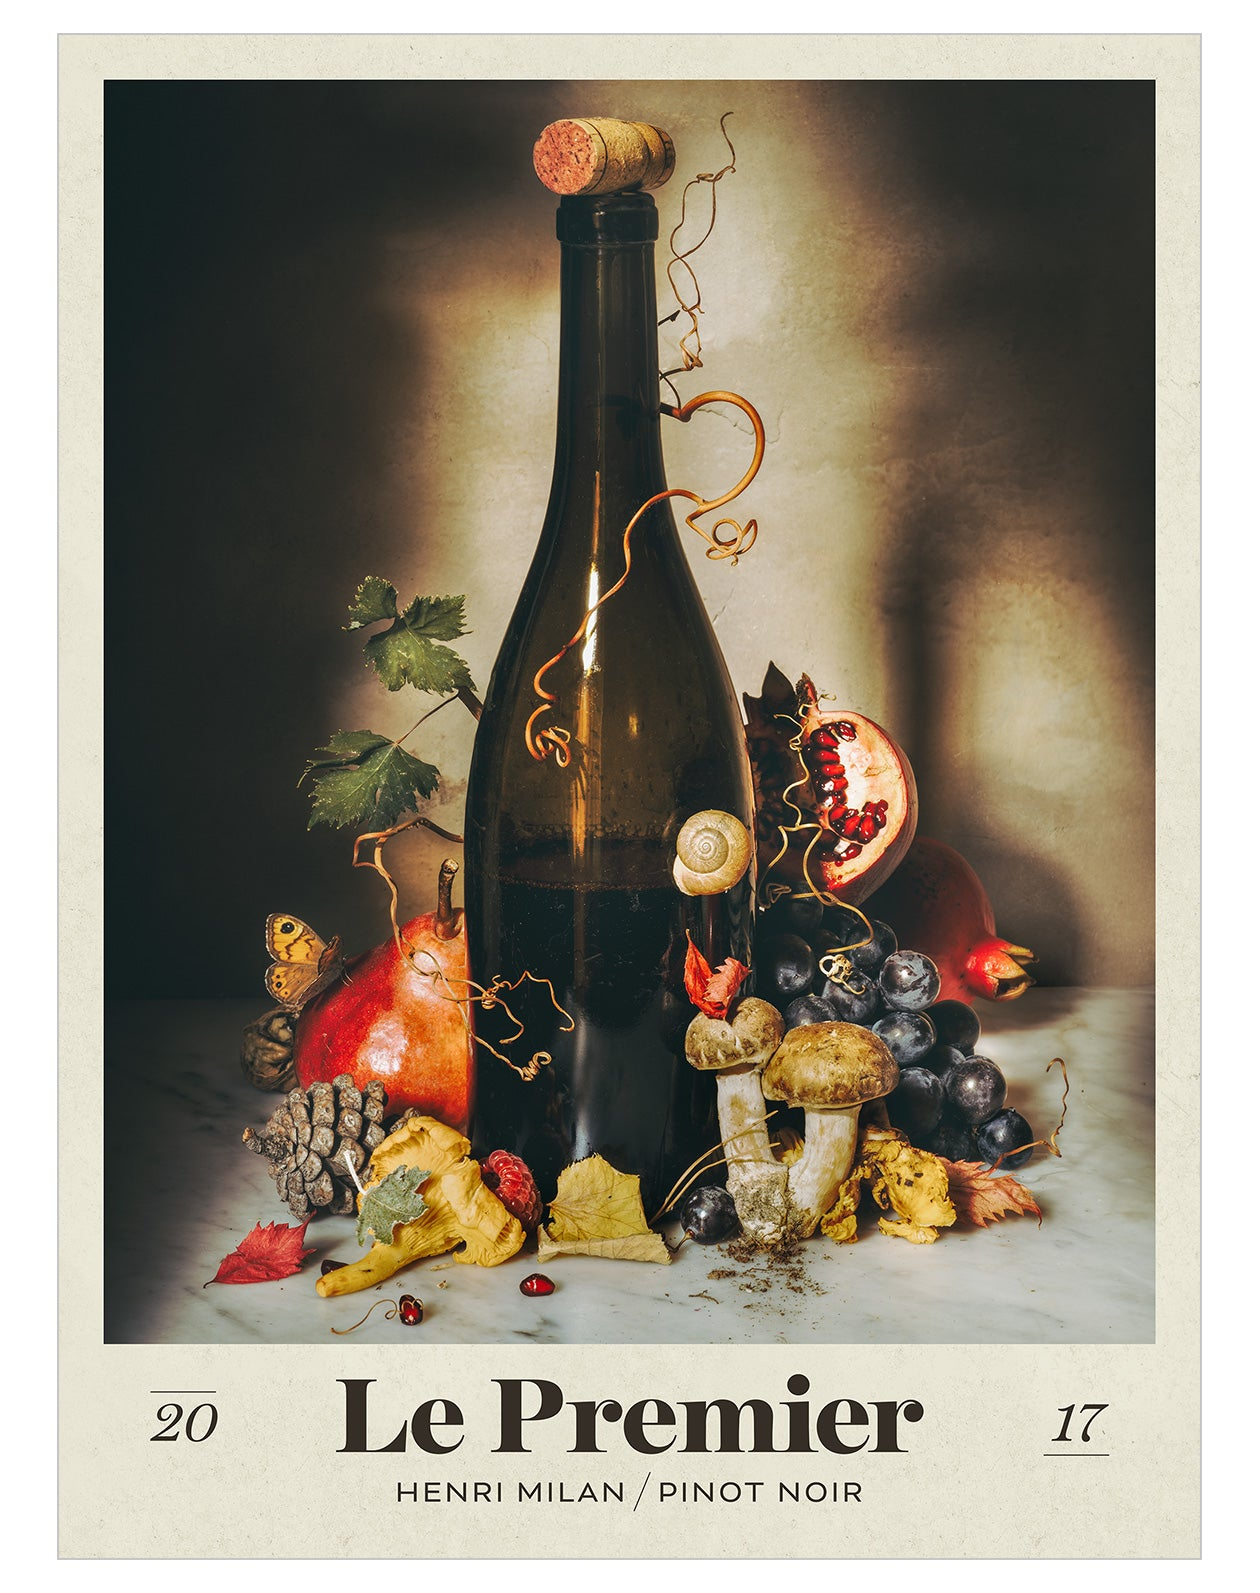 Domaine Milan Pinot Noir 2017 - Posters